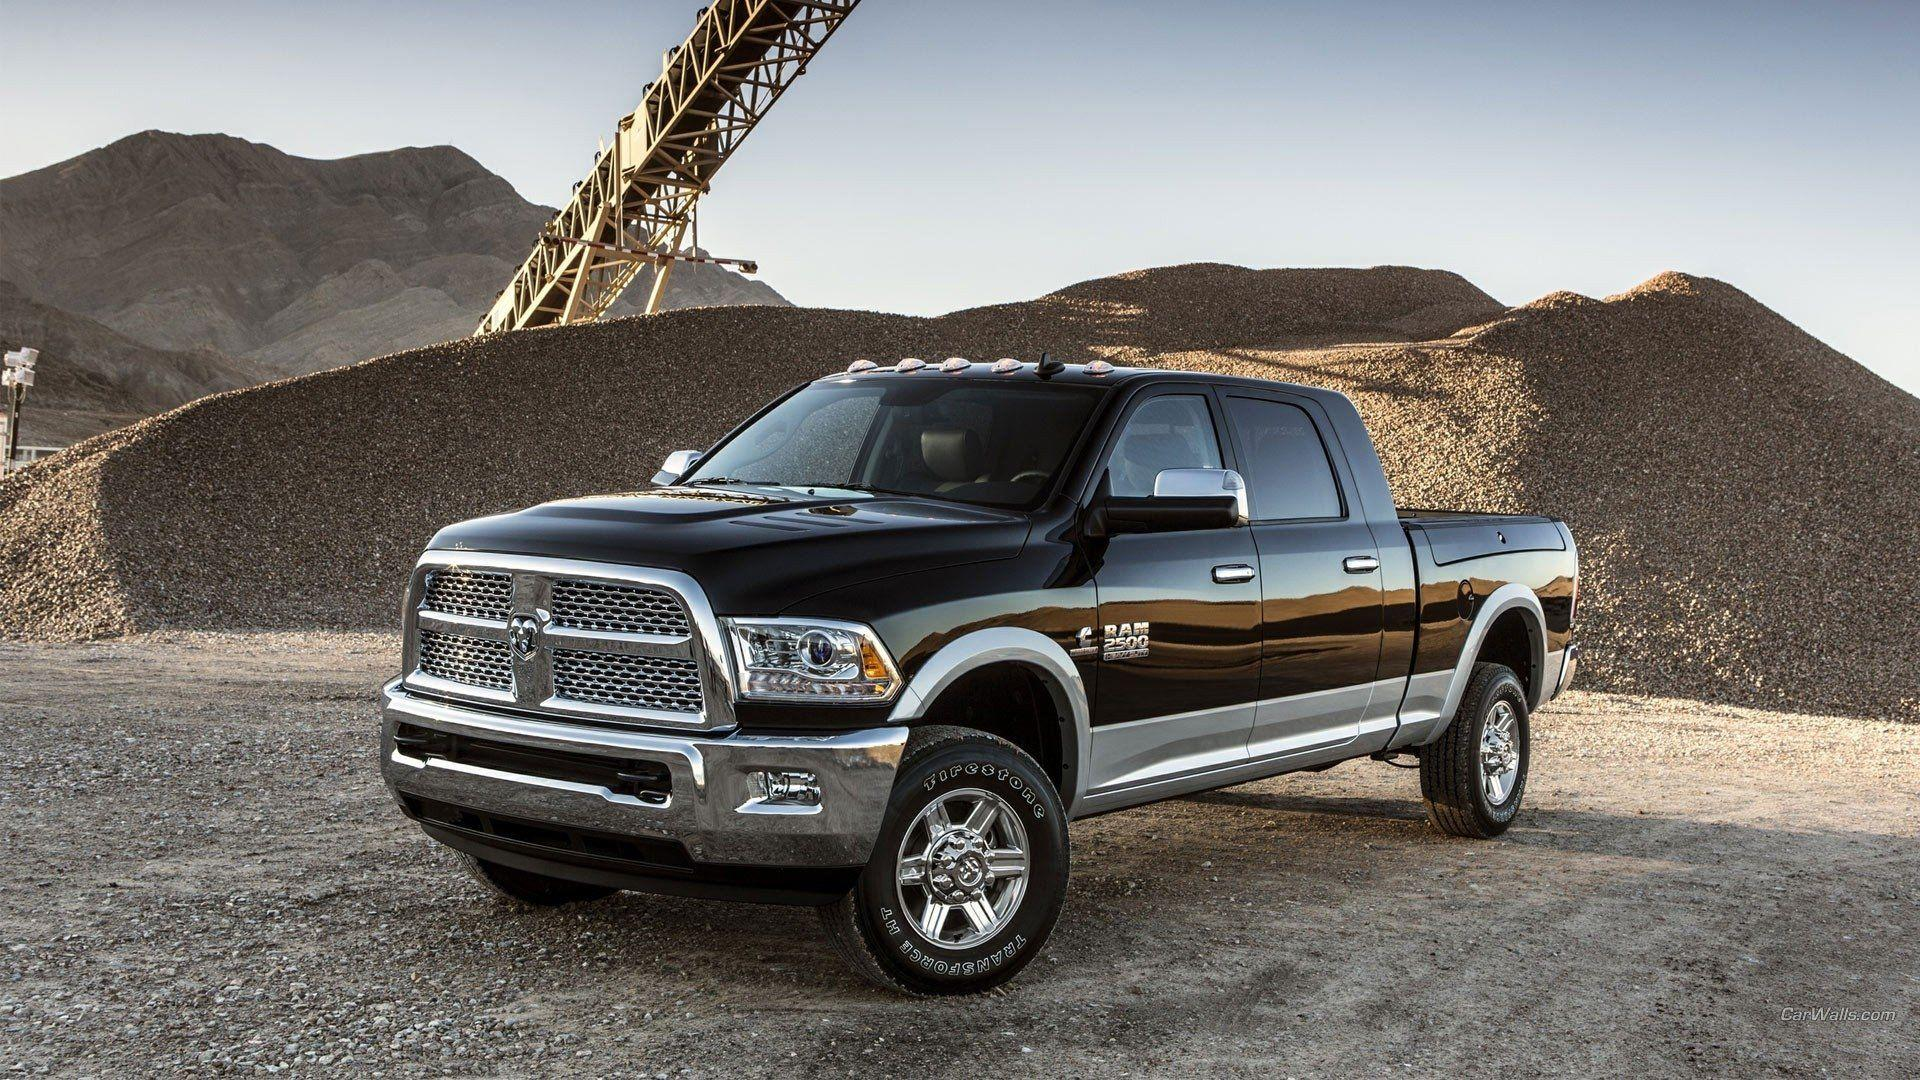 Ram Truck Wallpapers Wallpaper Cave